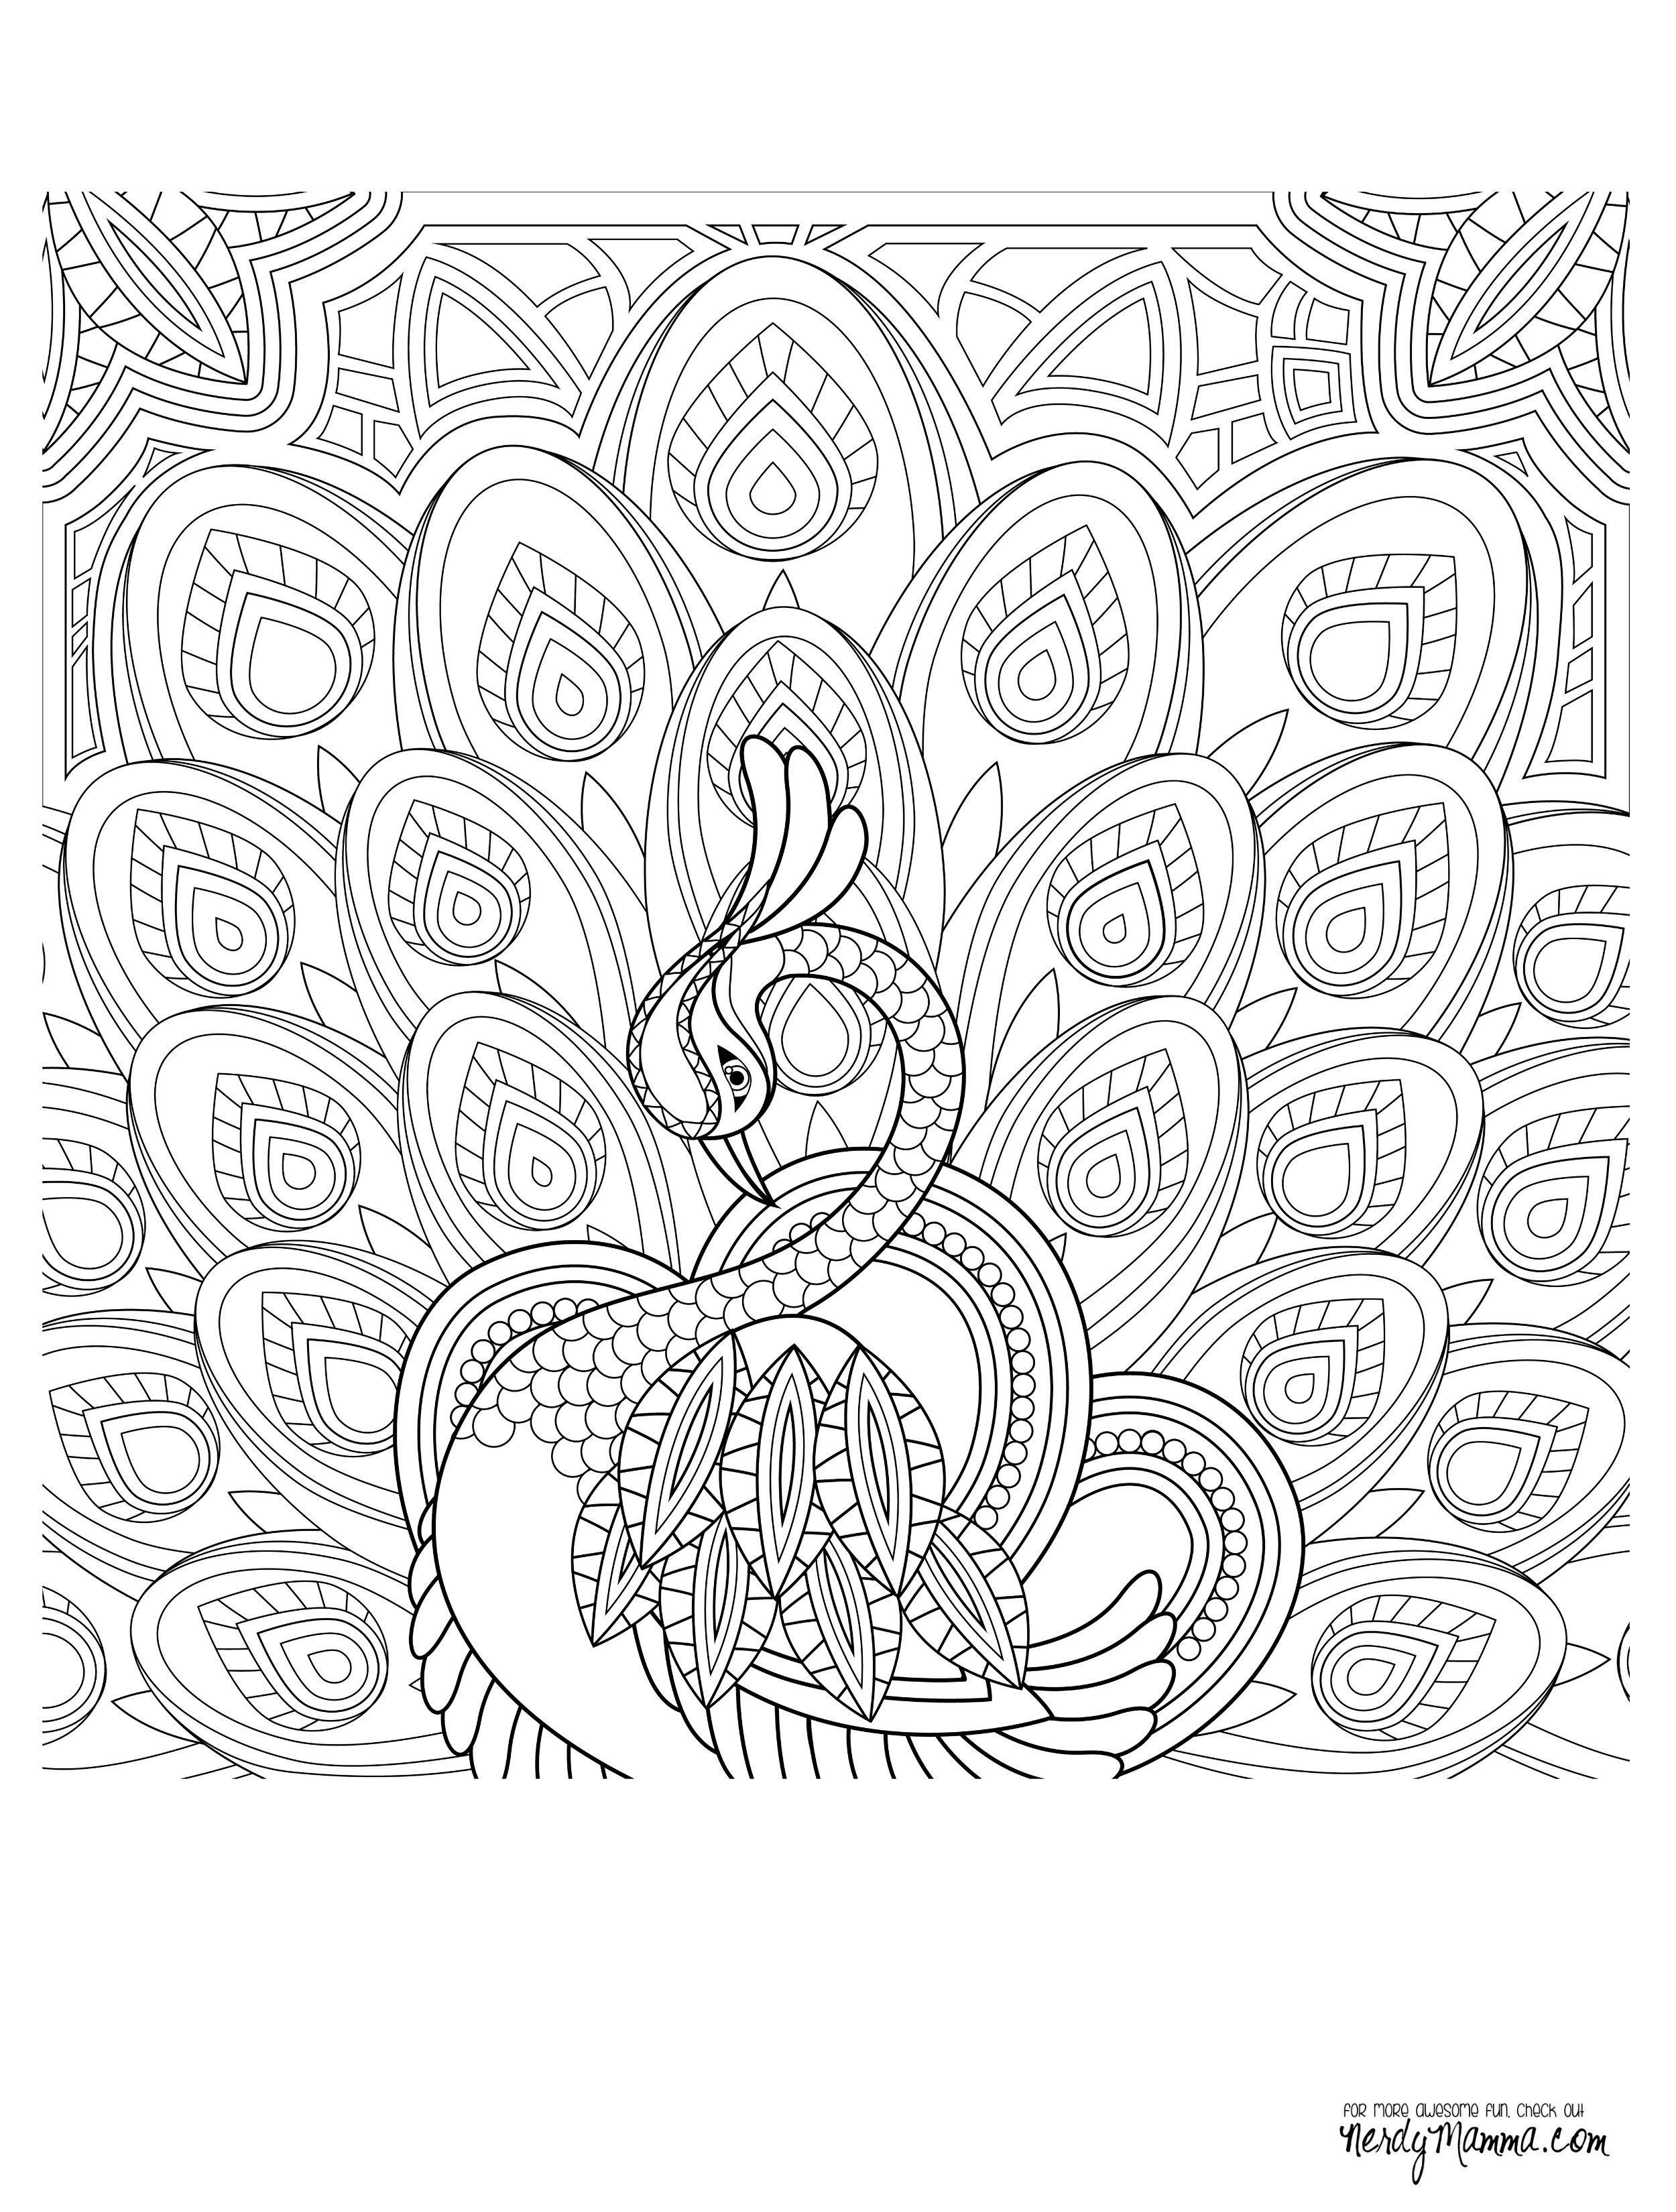 Firework Coloring Pages  Printable 6t - Free For Children